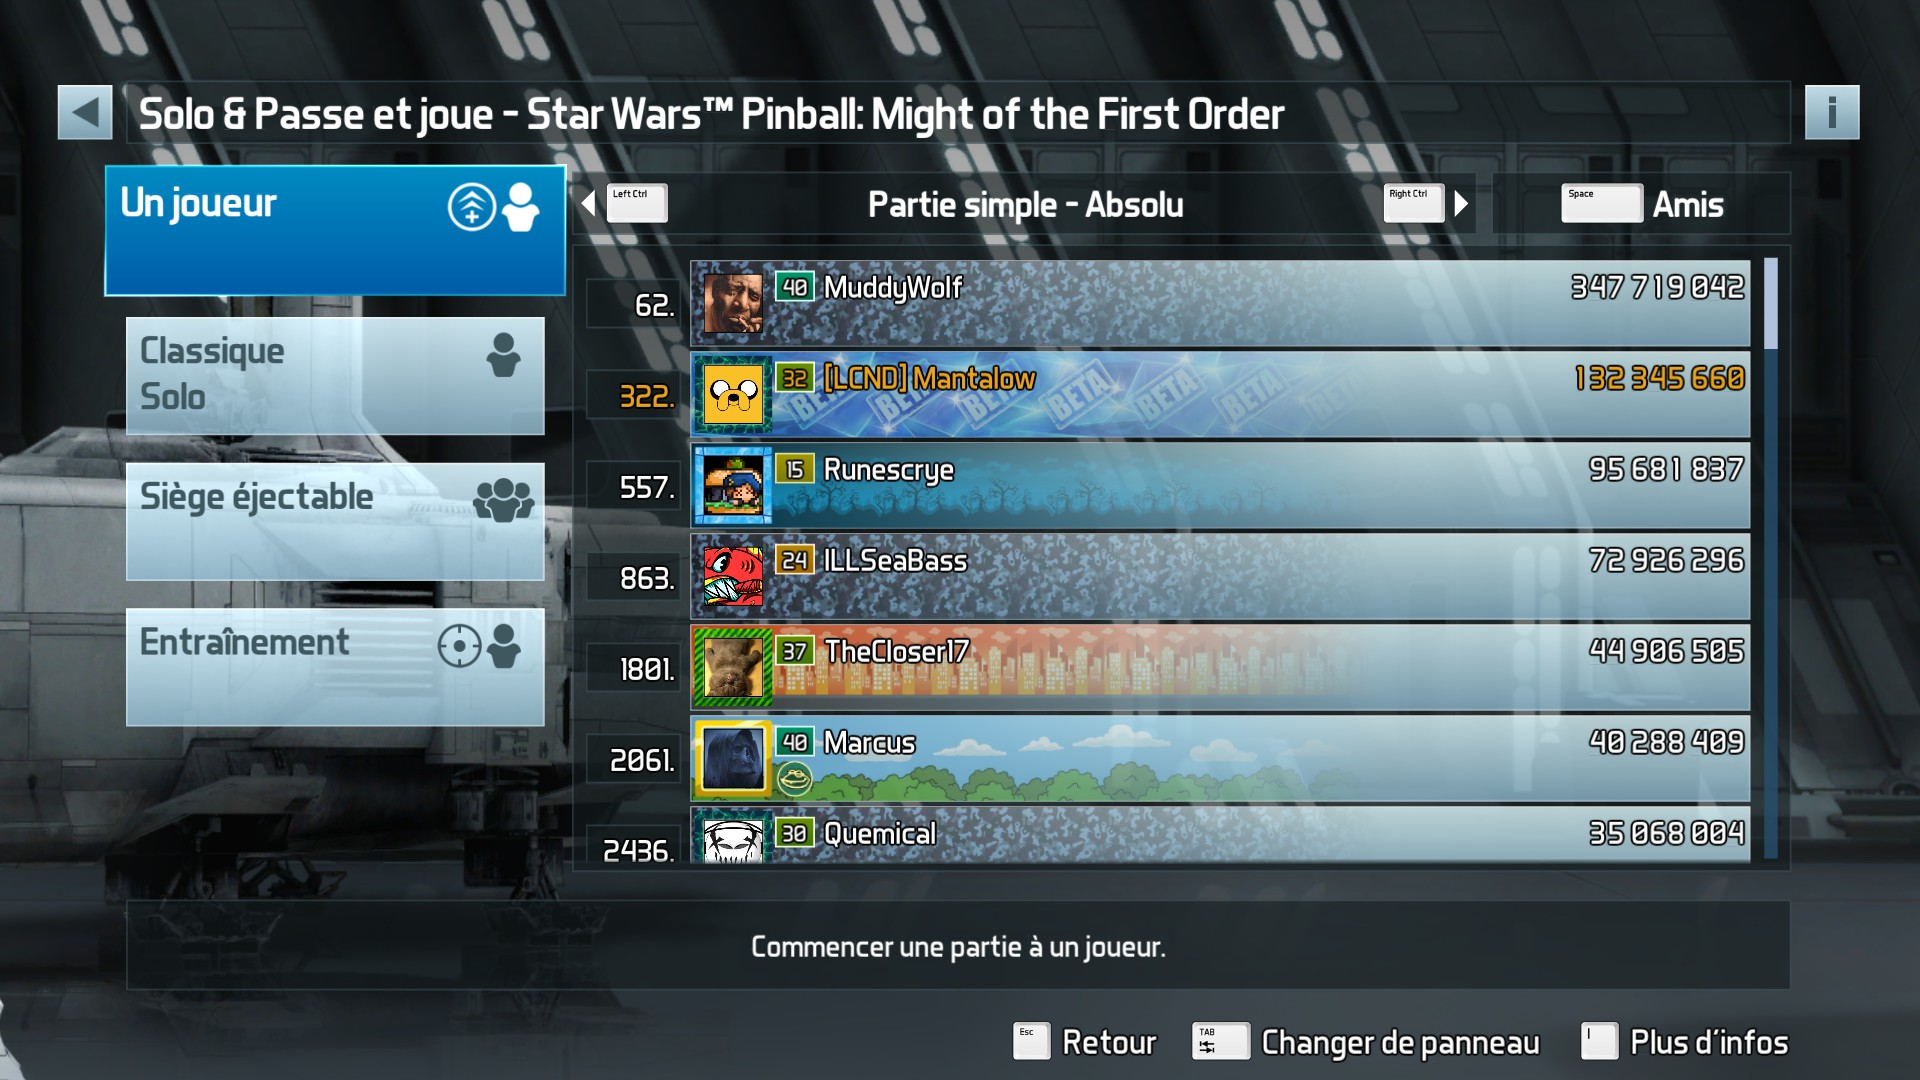 Mantalow: Pinball FX3: Star Wars Pinball: Might of the First Order (PC) 132,345,660 points on 2018-01-14 08:38:58